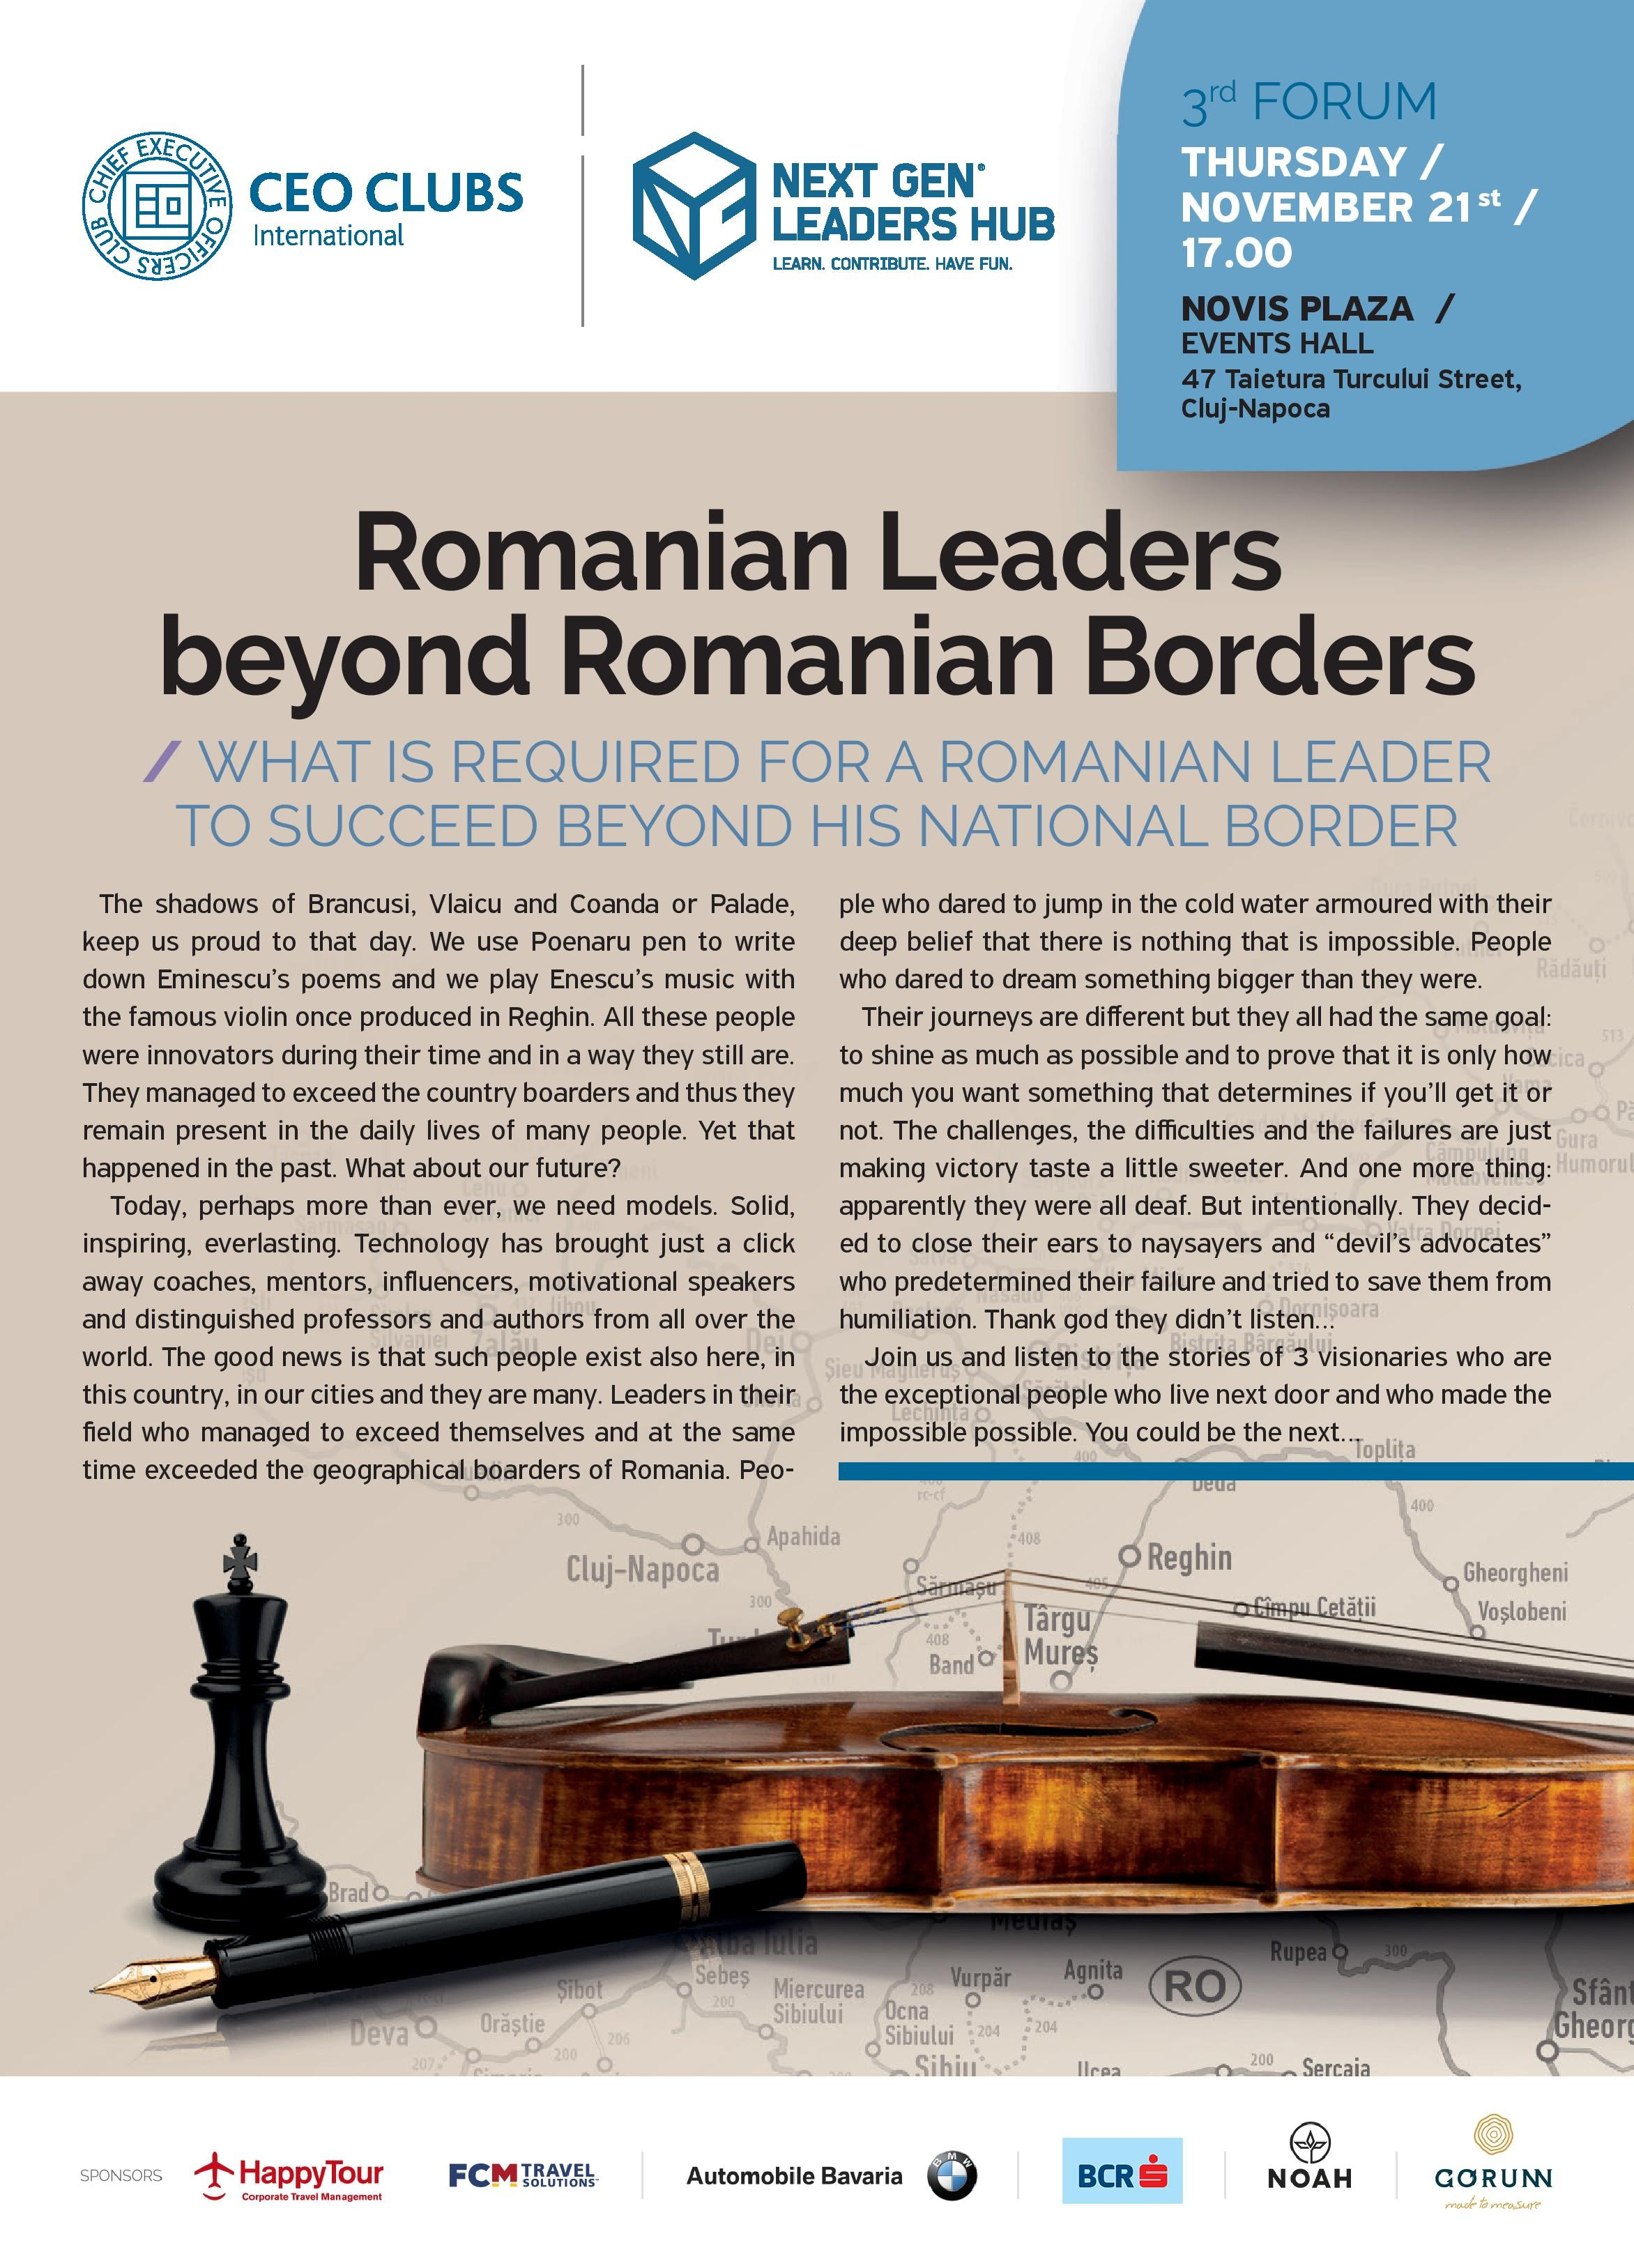 3rd Forum: Romanian Leaders beyond Romanian Boarders